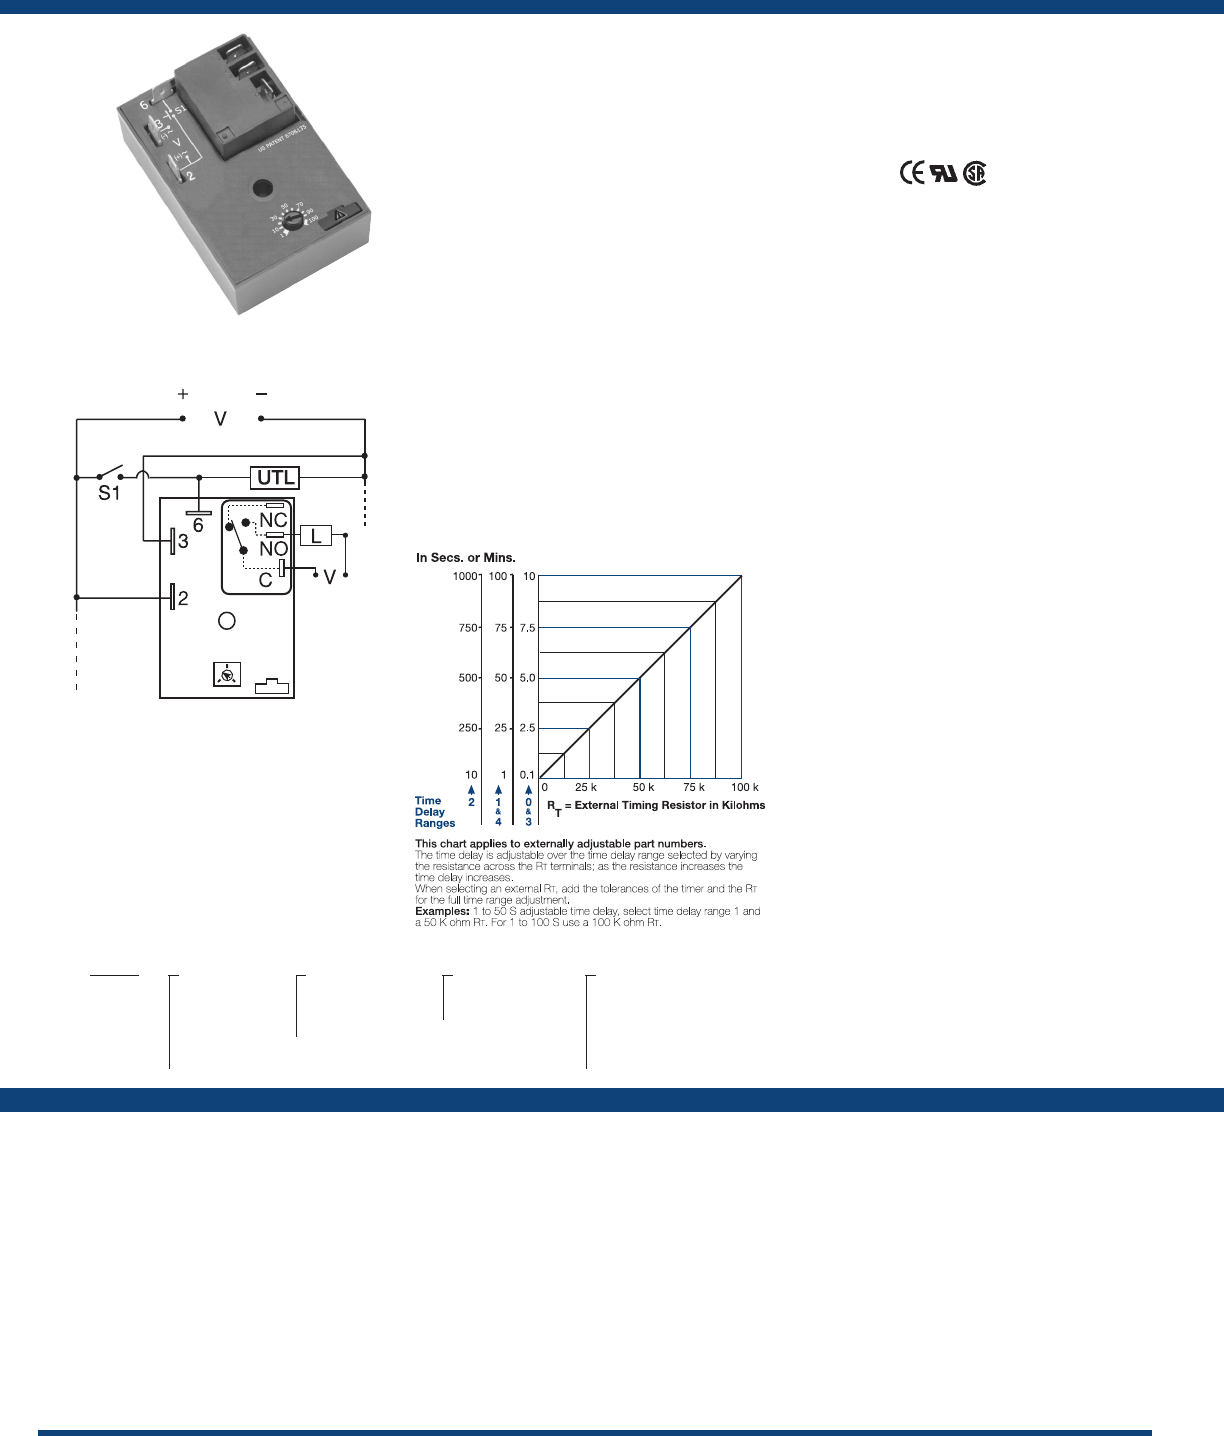 Product Detail Manual Ssac Alternating Relay Wiring Diagram 44 Ssaccom 800 843 8848 Fax 605 348 5685